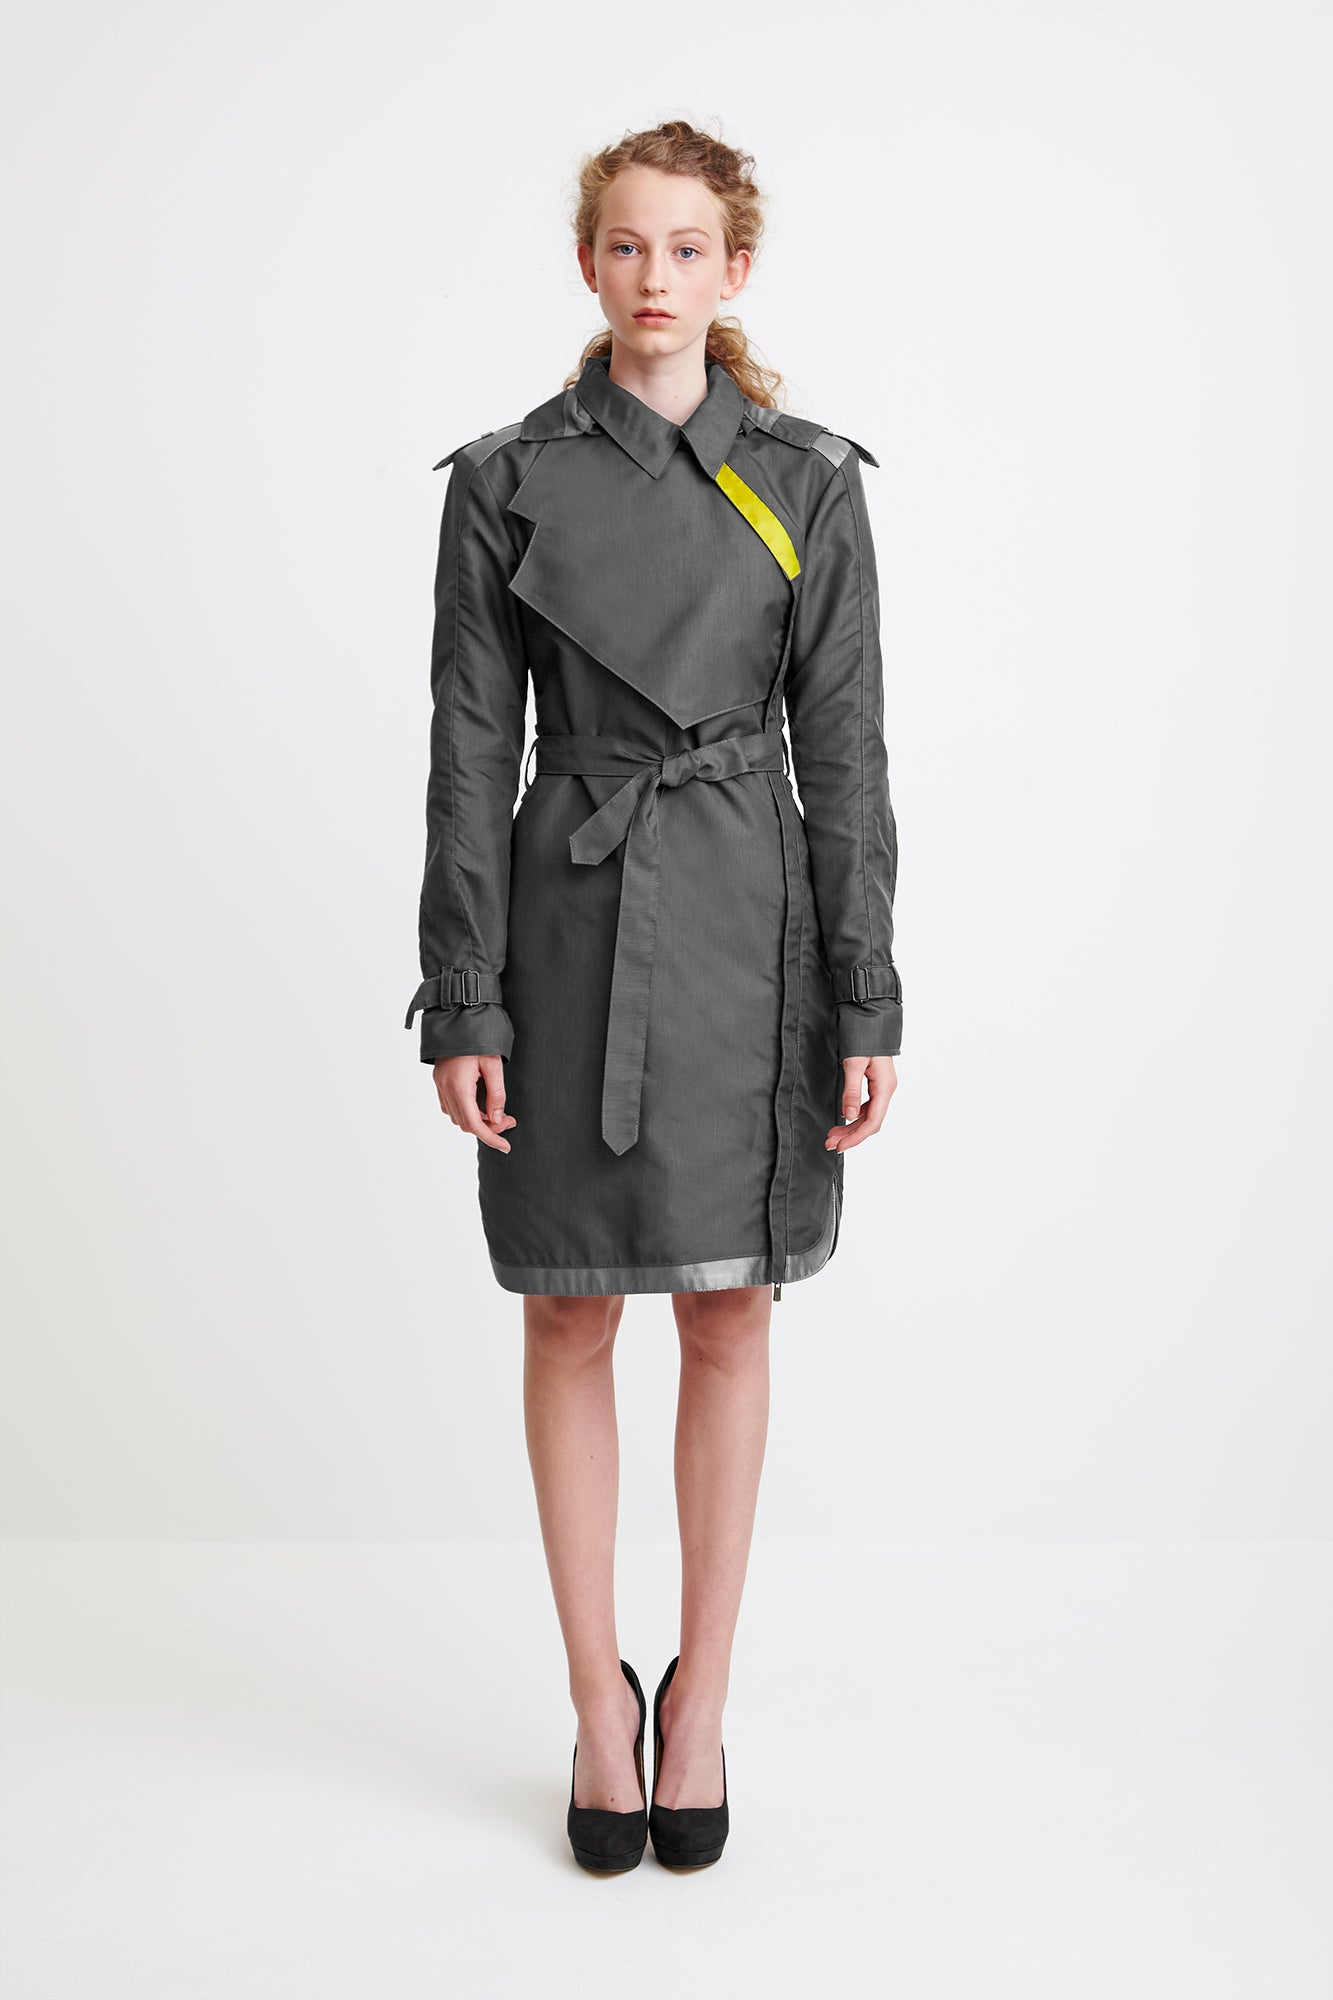 ONE-SIDED TRENCH COAT - grey raincoat for women